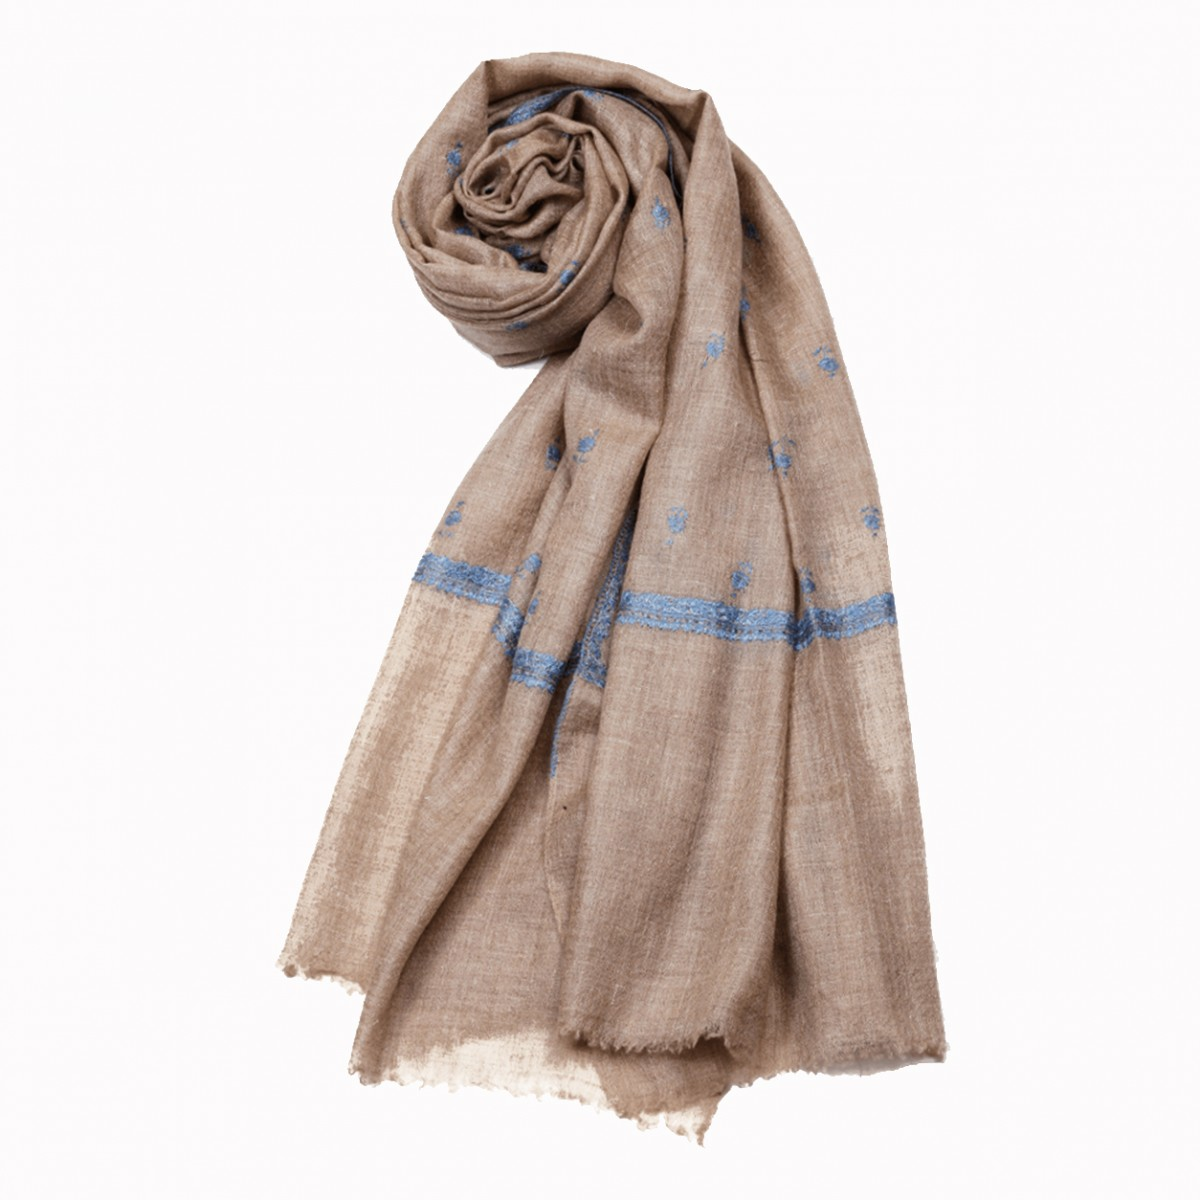 Embroidered Handloom Pashmina - Natural Stole